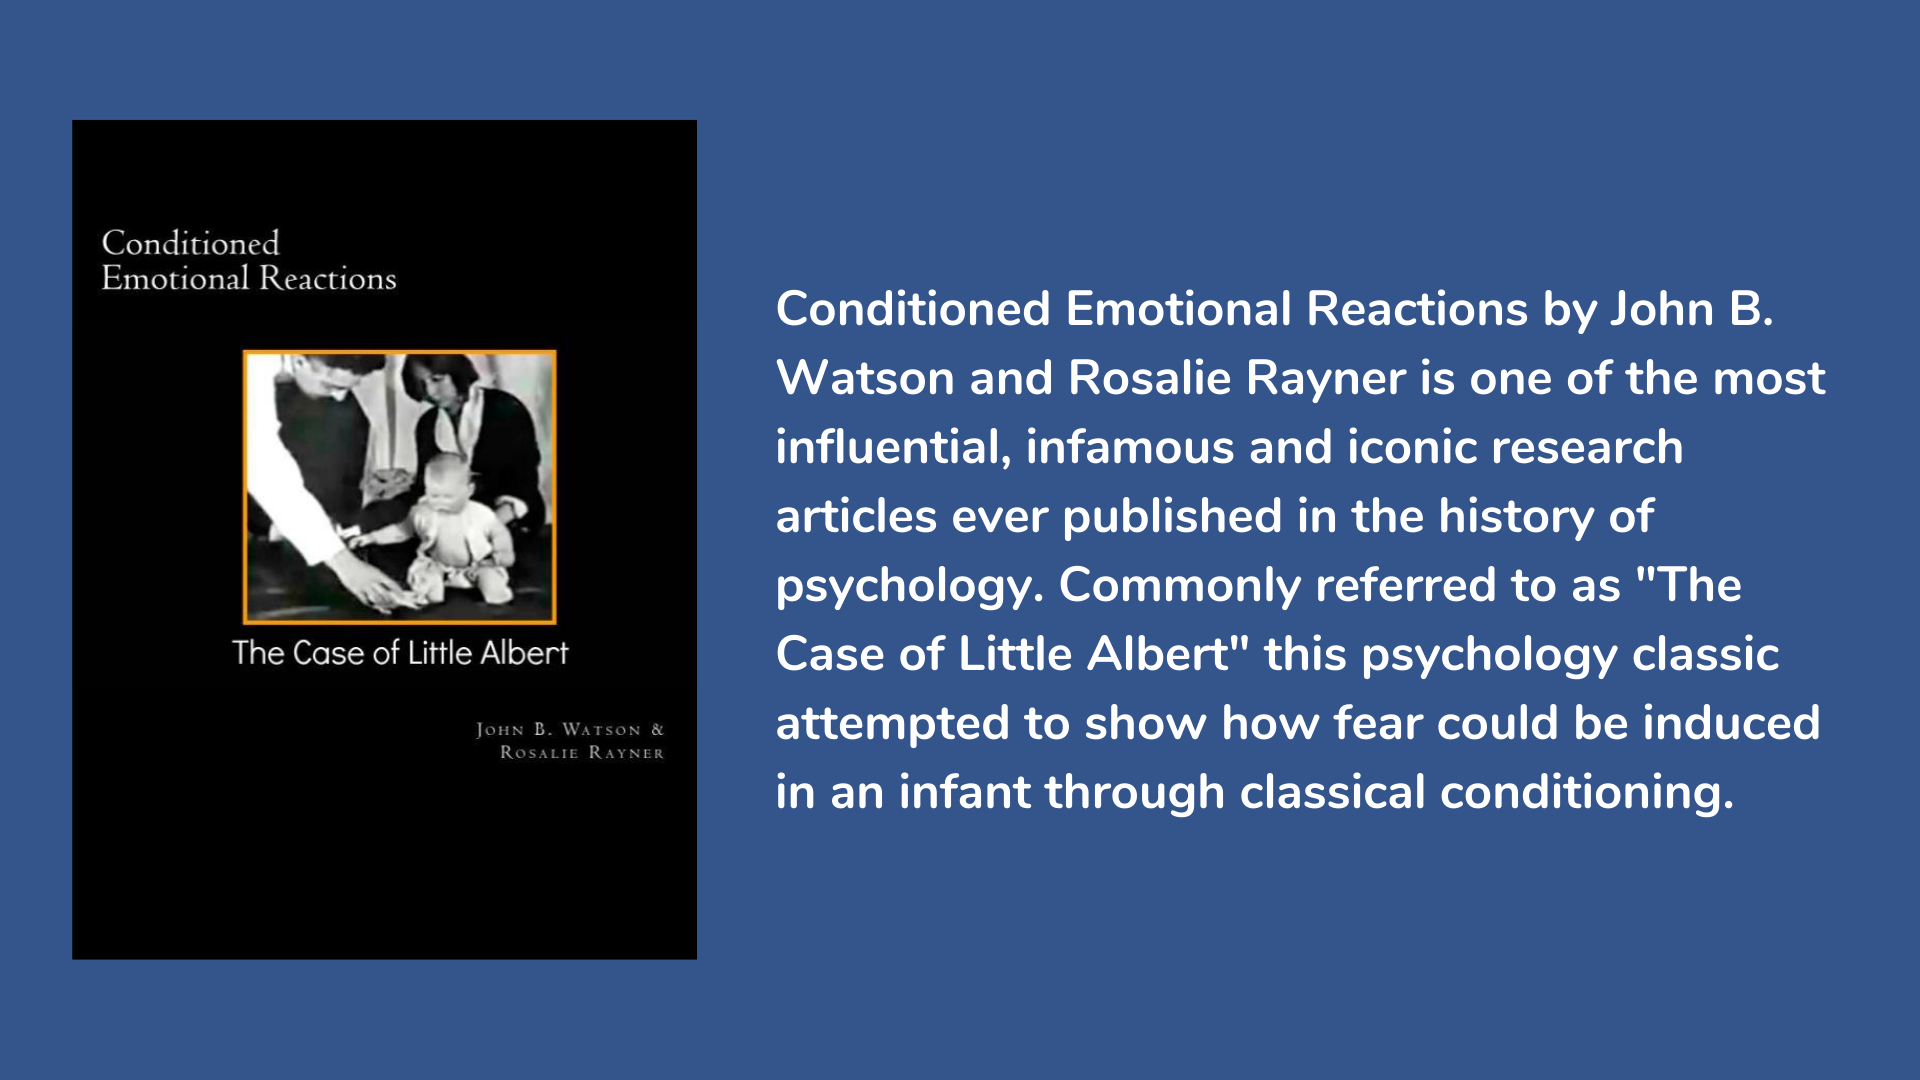 Conditioned Emotional Reactions (The Case of Little Albert) by John B. Watson and Rosalie Rayner